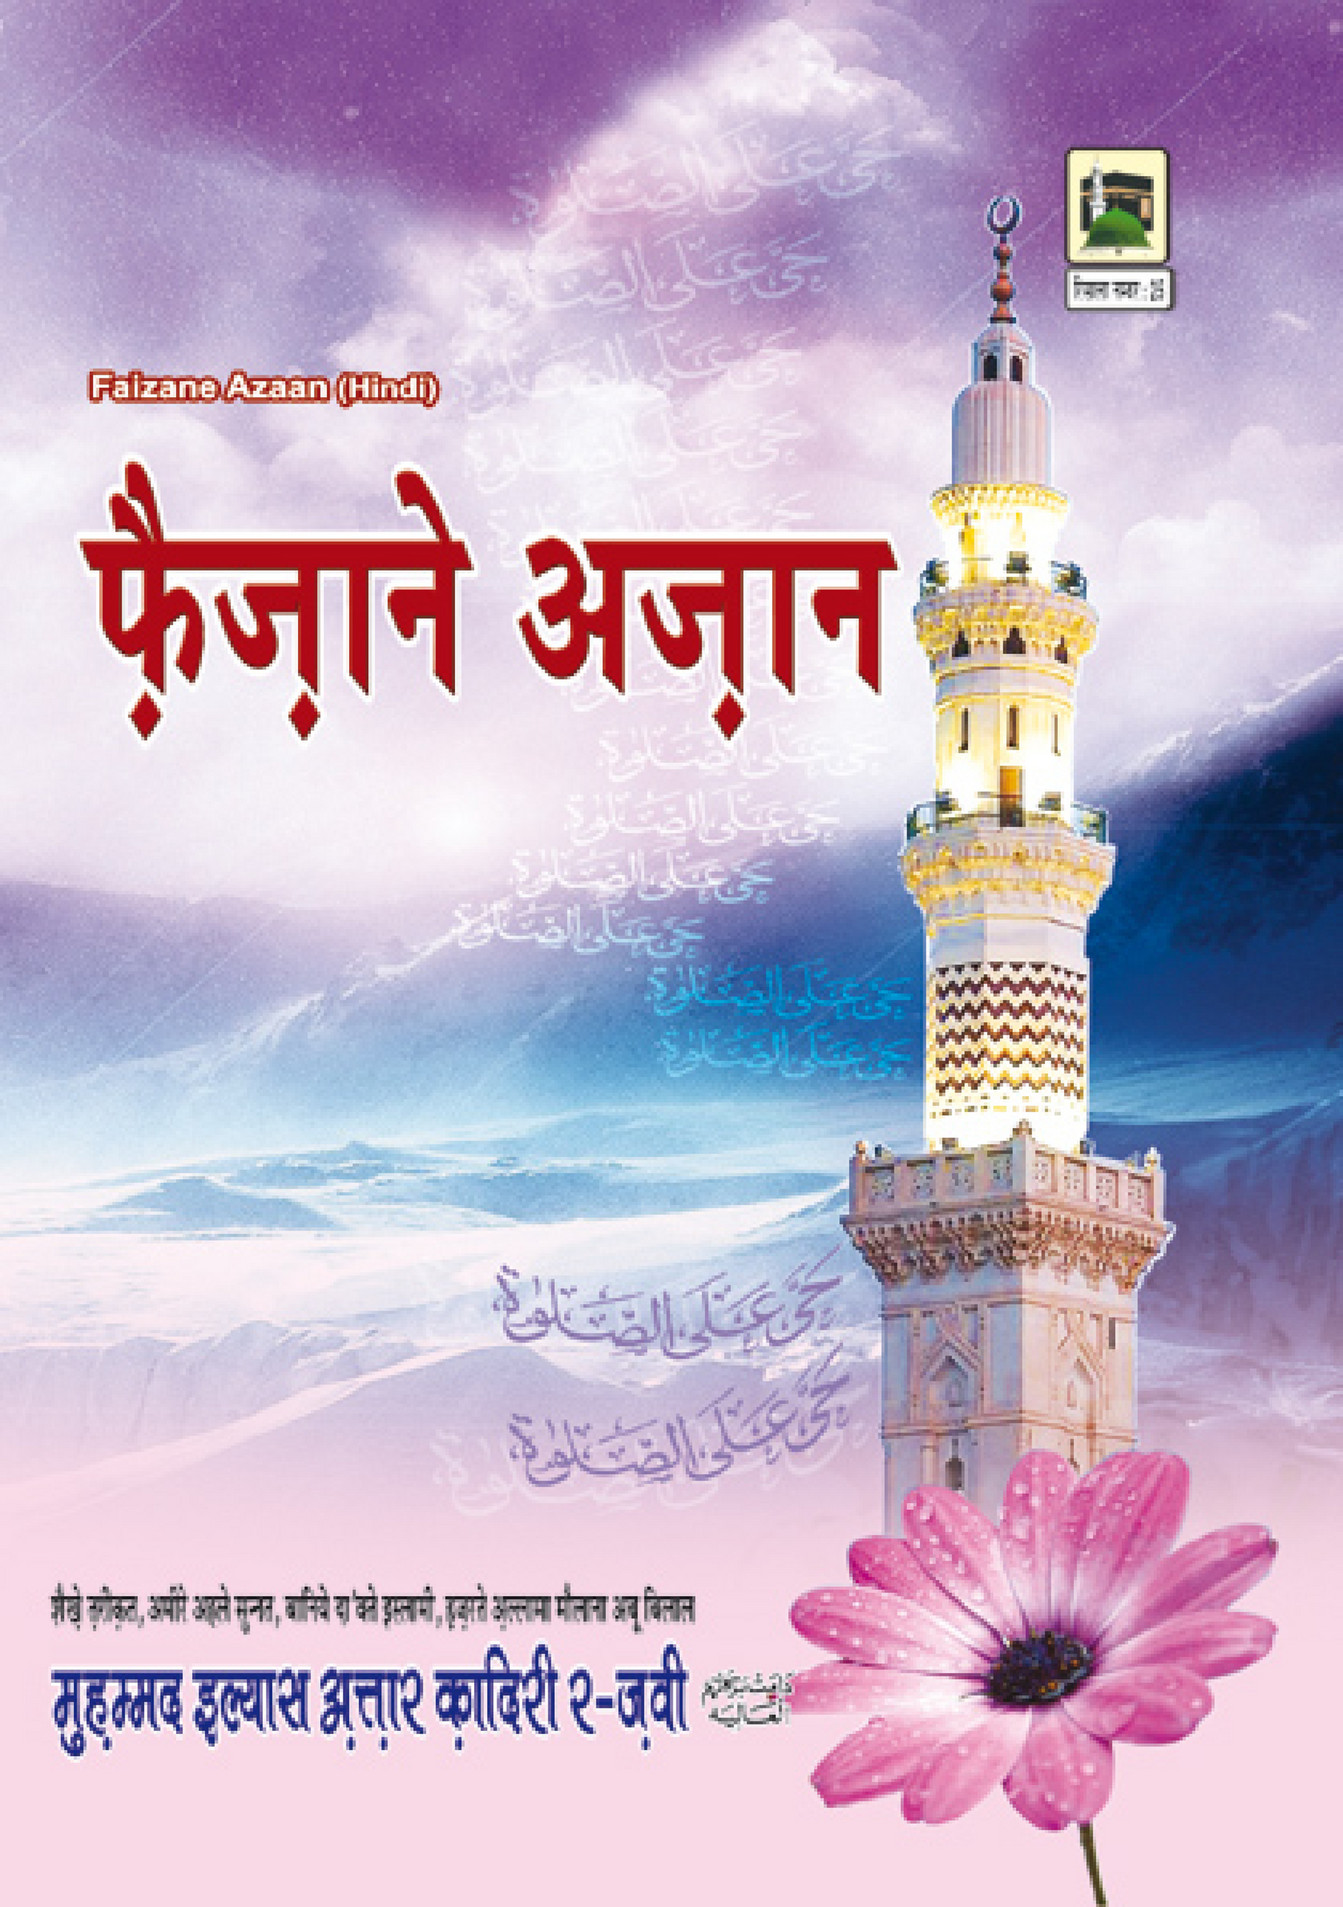 My publications - Faizan e Azan (In Hindi) - Page 24-25 - Created